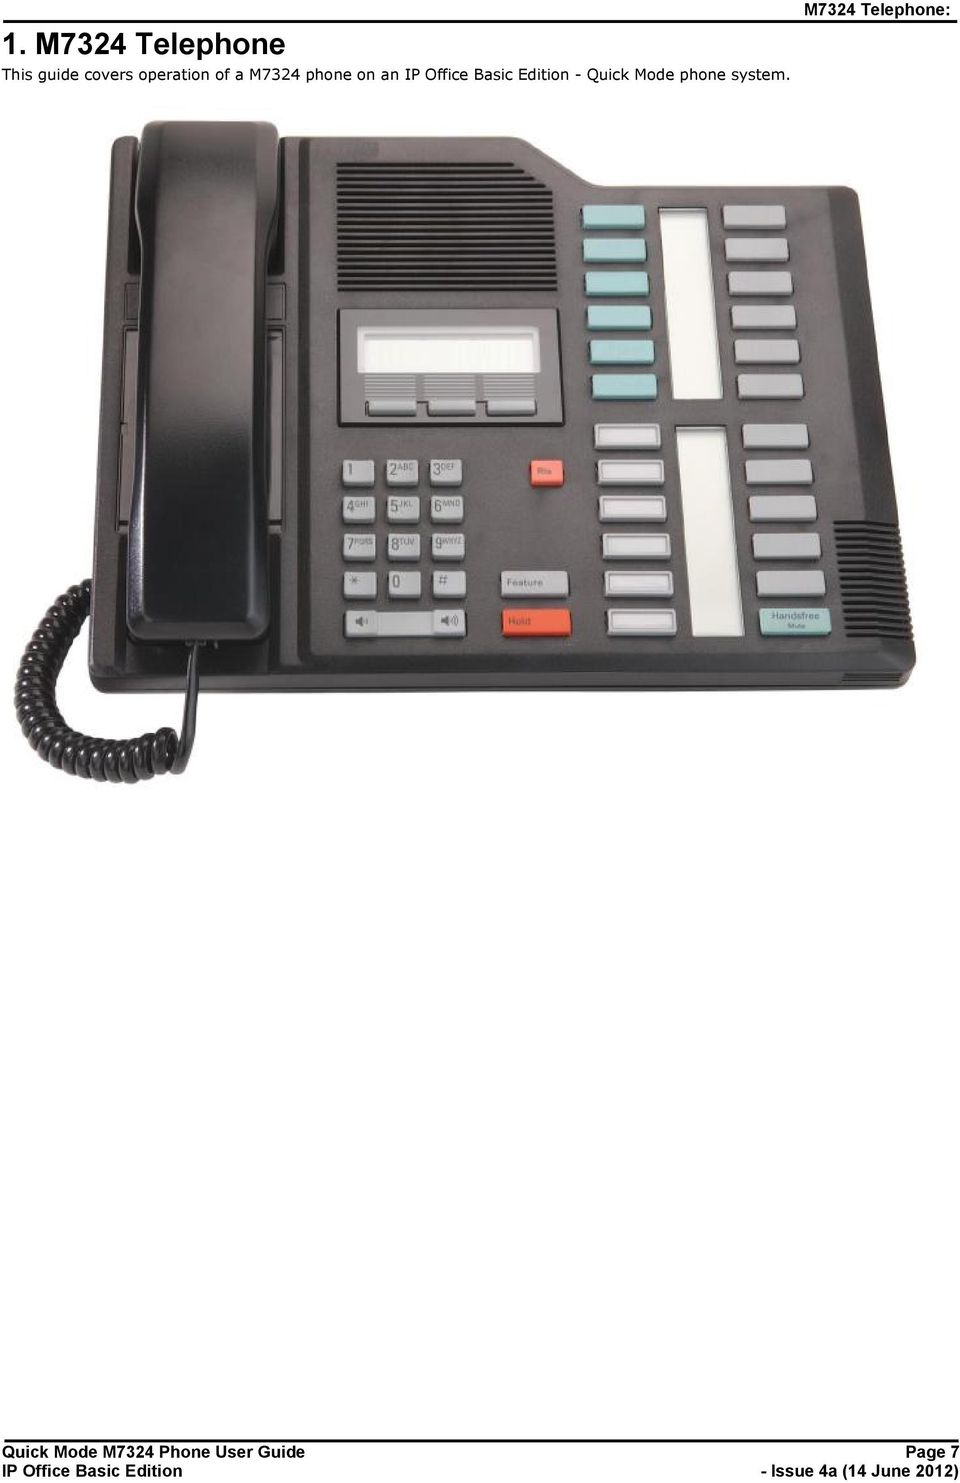 Quick Mode phone system.